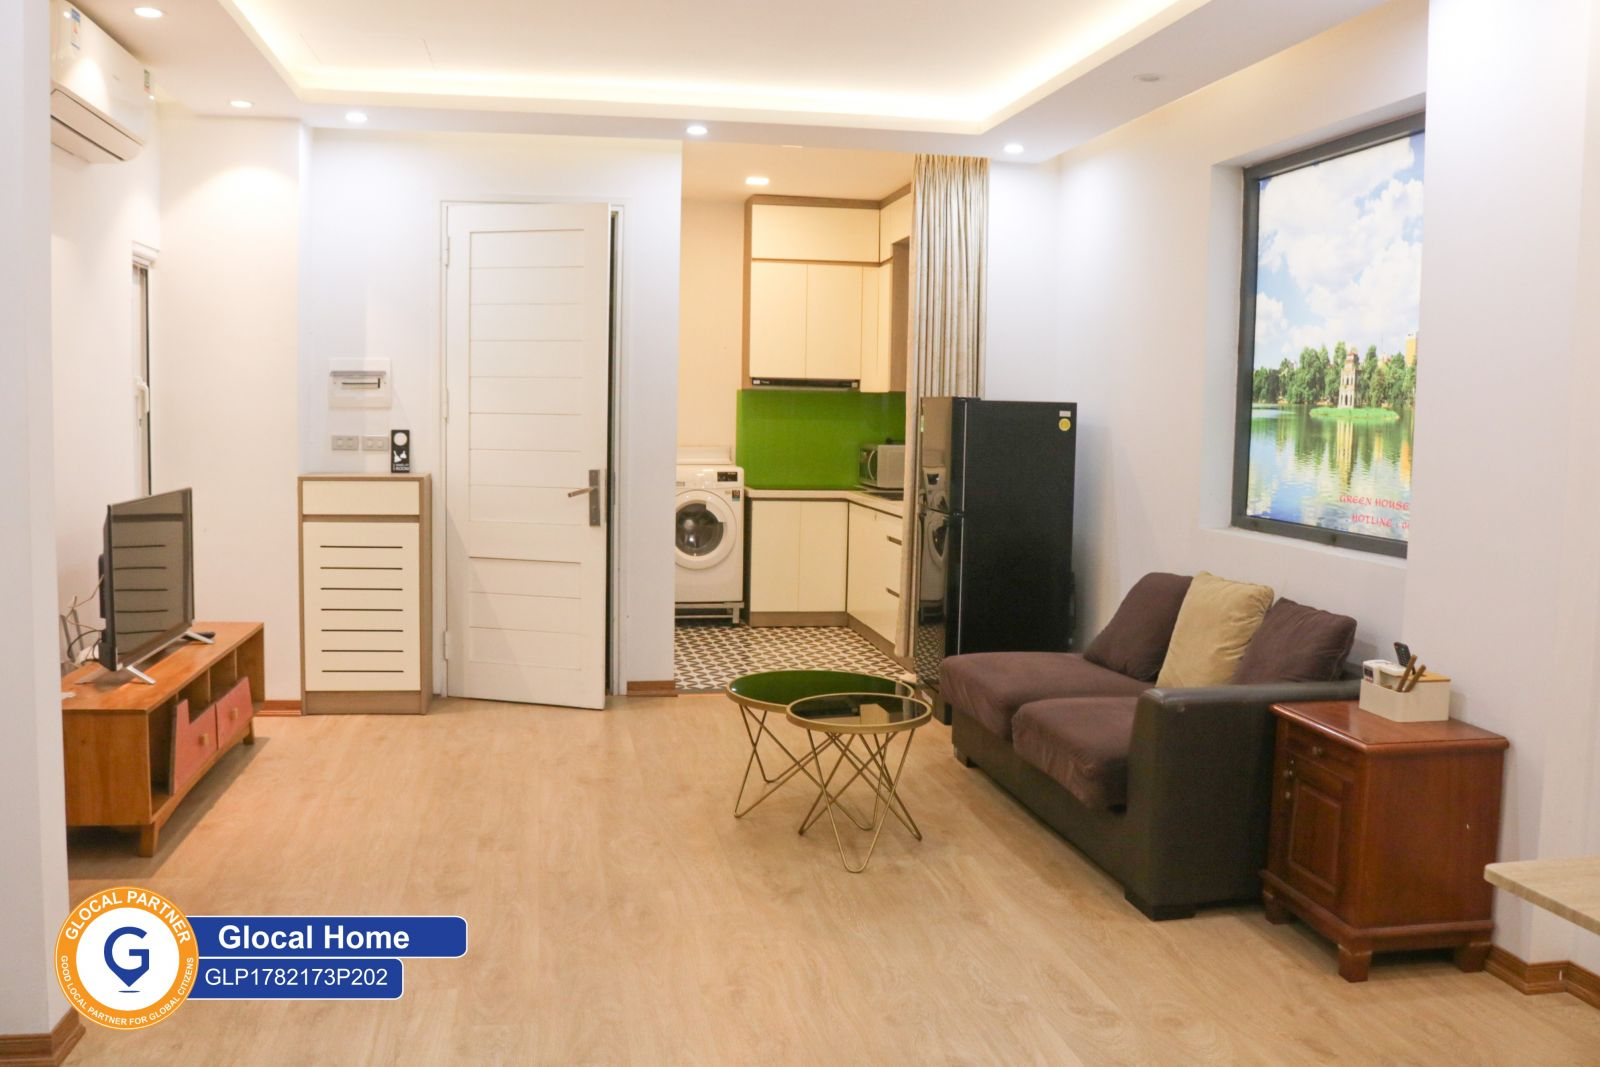 Studio room located in a green area on Nguyen Khac Hieu Street